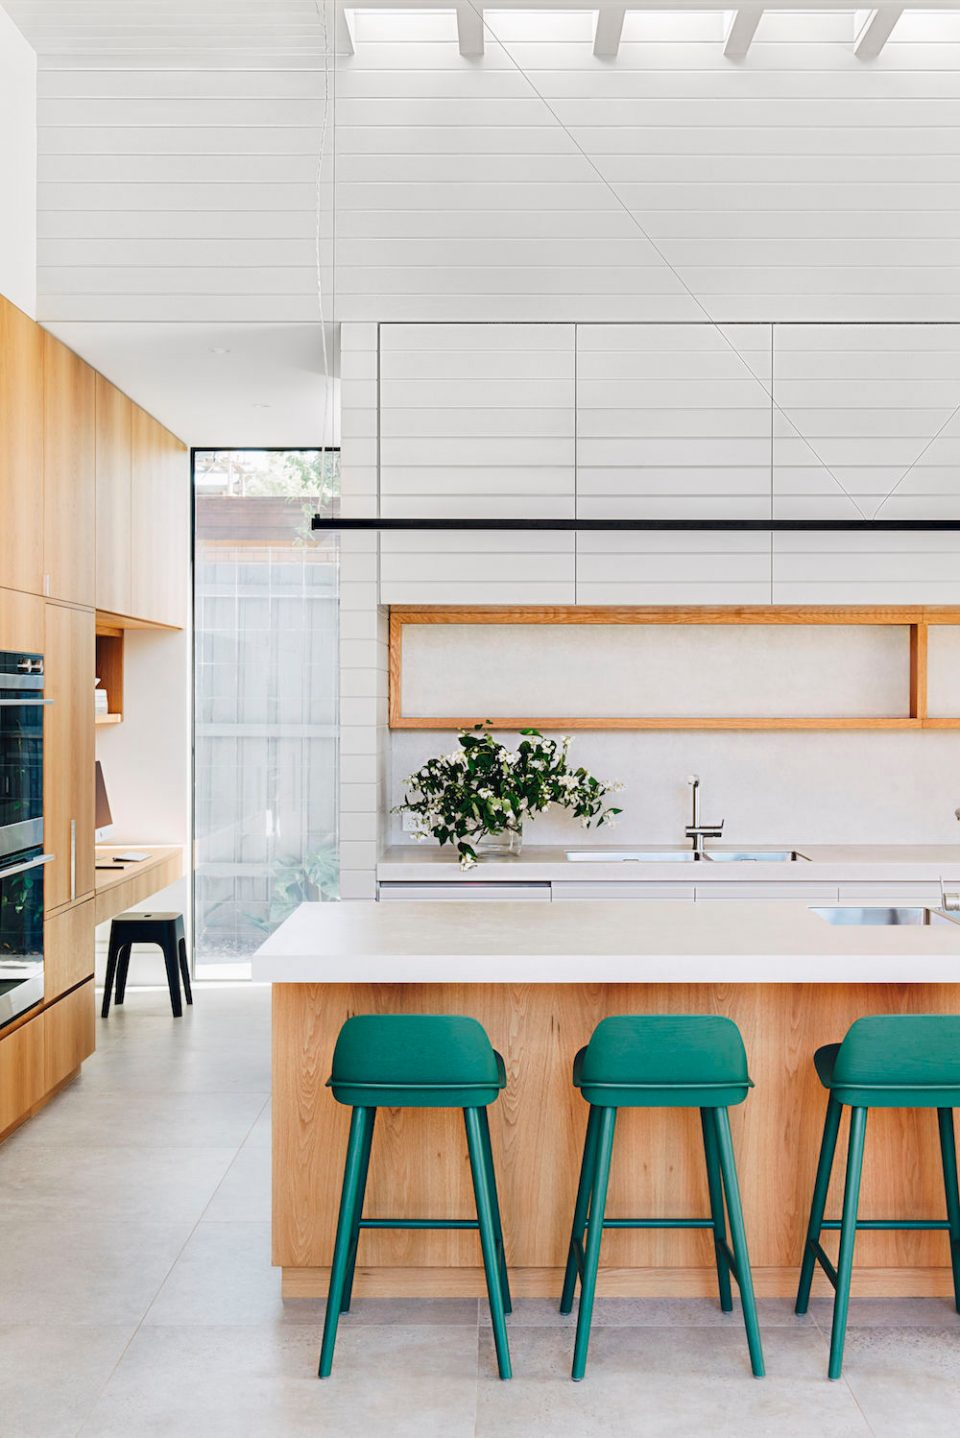 The best of residential interior decoration - Beach House by SJB